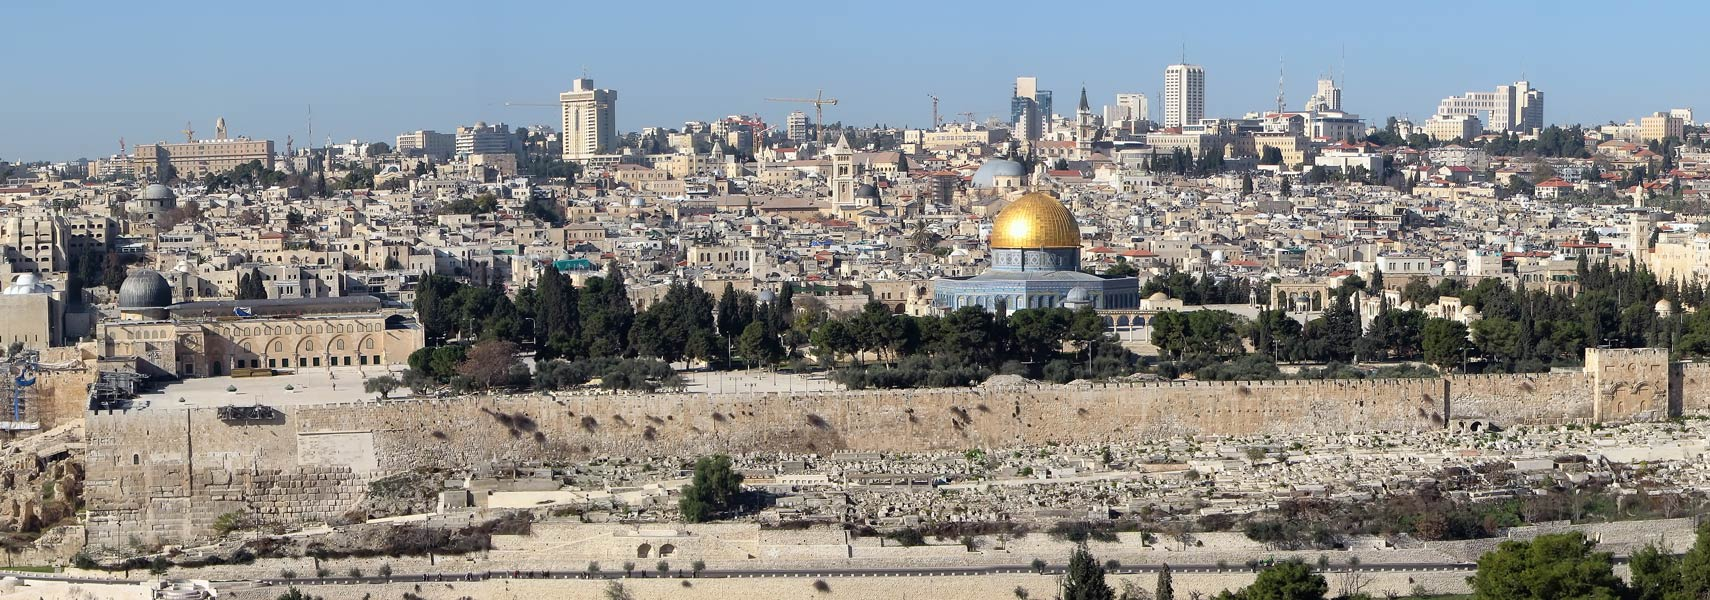 Panorama view of Jerusalem with the Temple Mount and the Dome of the Rock.